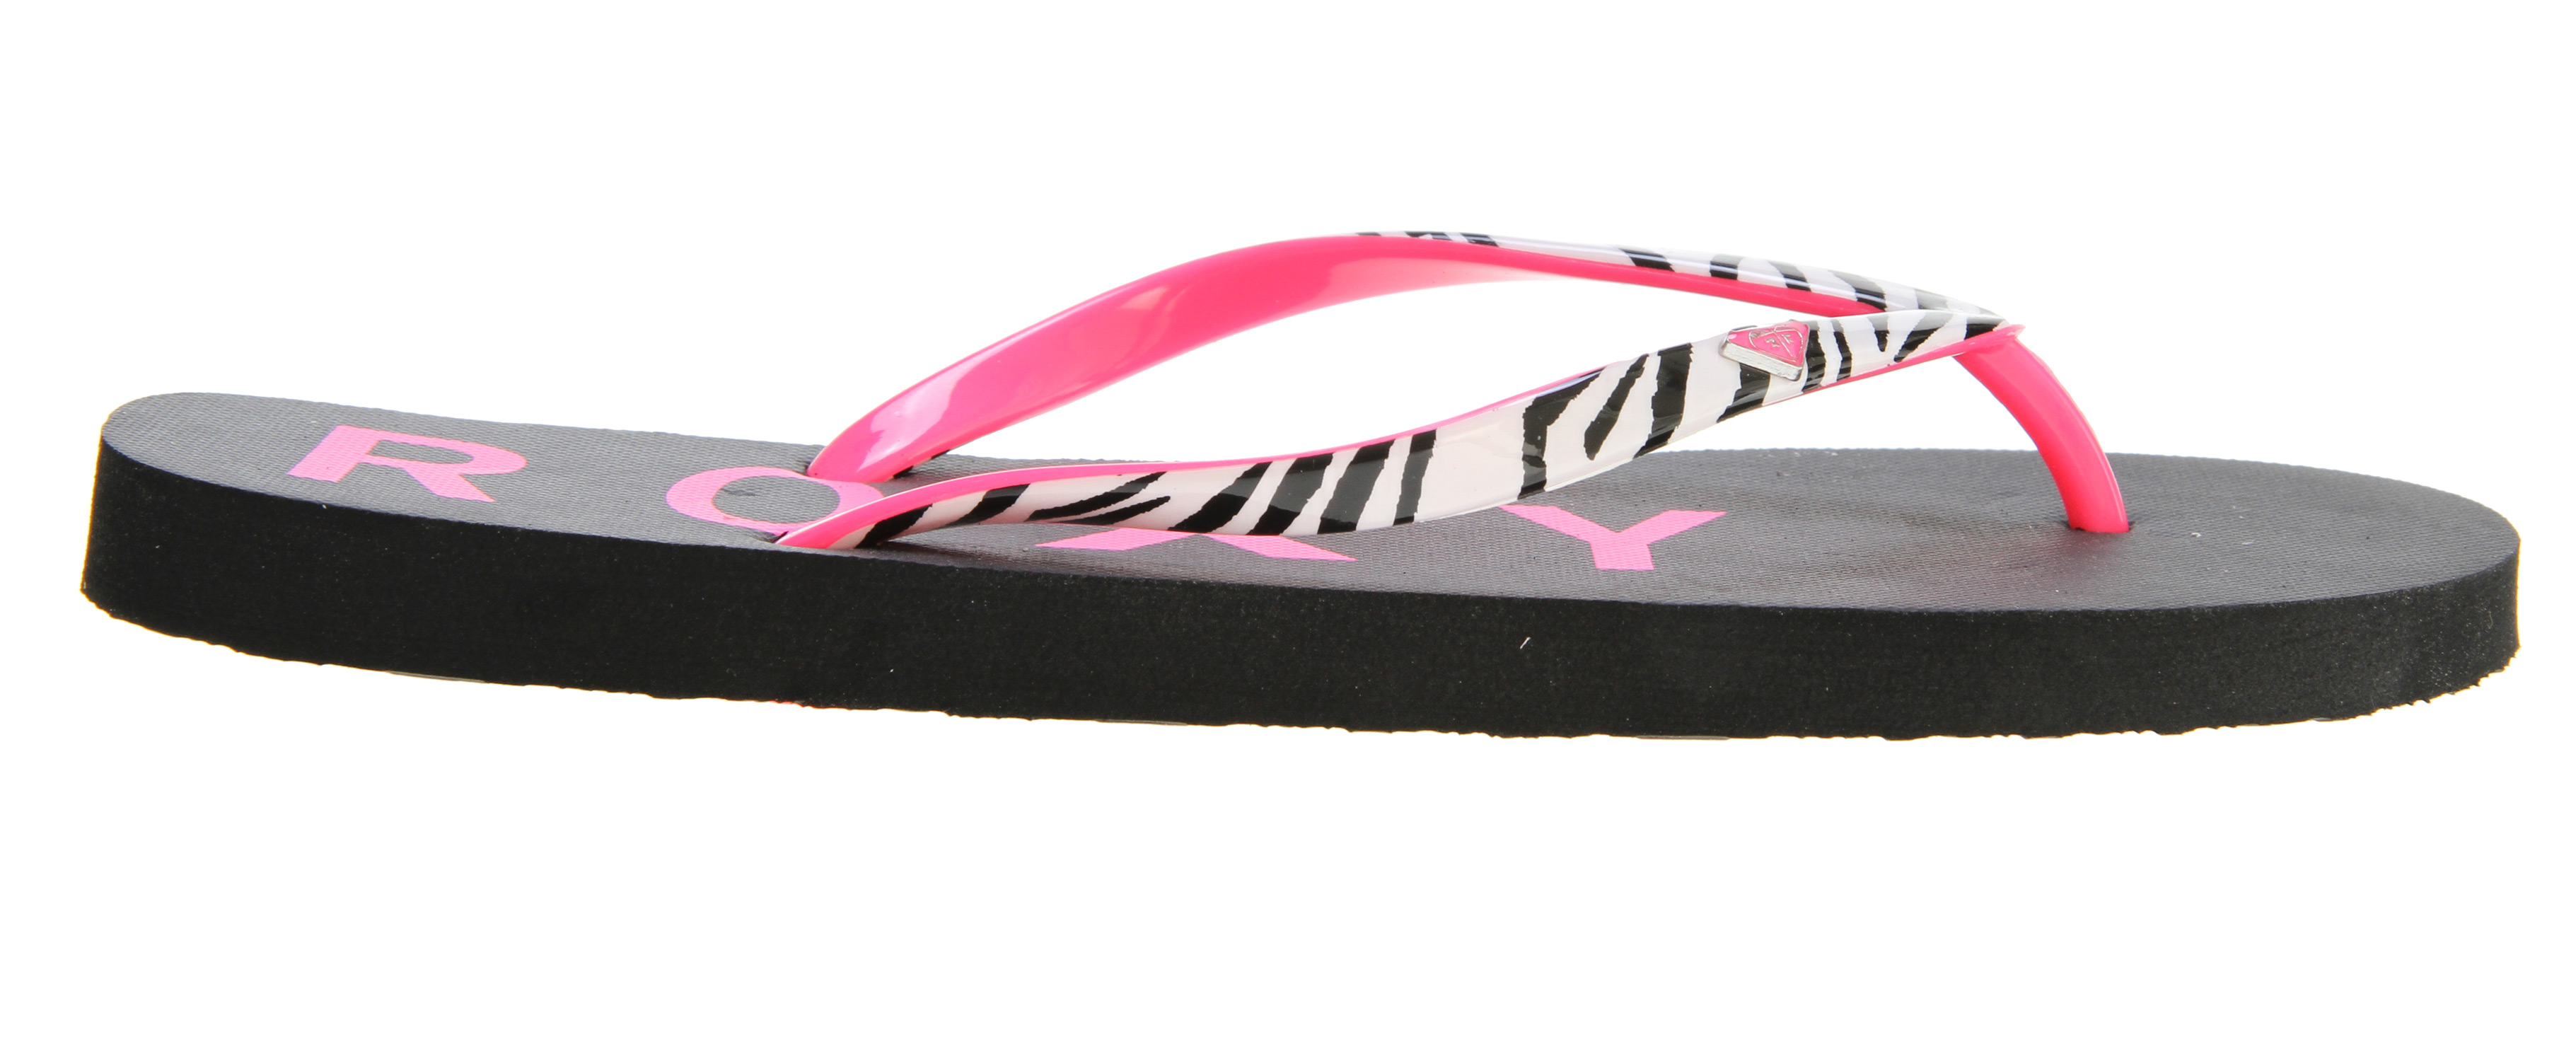 Surf Key Features of the Roxy Mimosa III Sandals: Skinny soft rubber and PVC printed upper with painted heart logo Squishy rubber insole with graphic Rubber outsole - $13.95